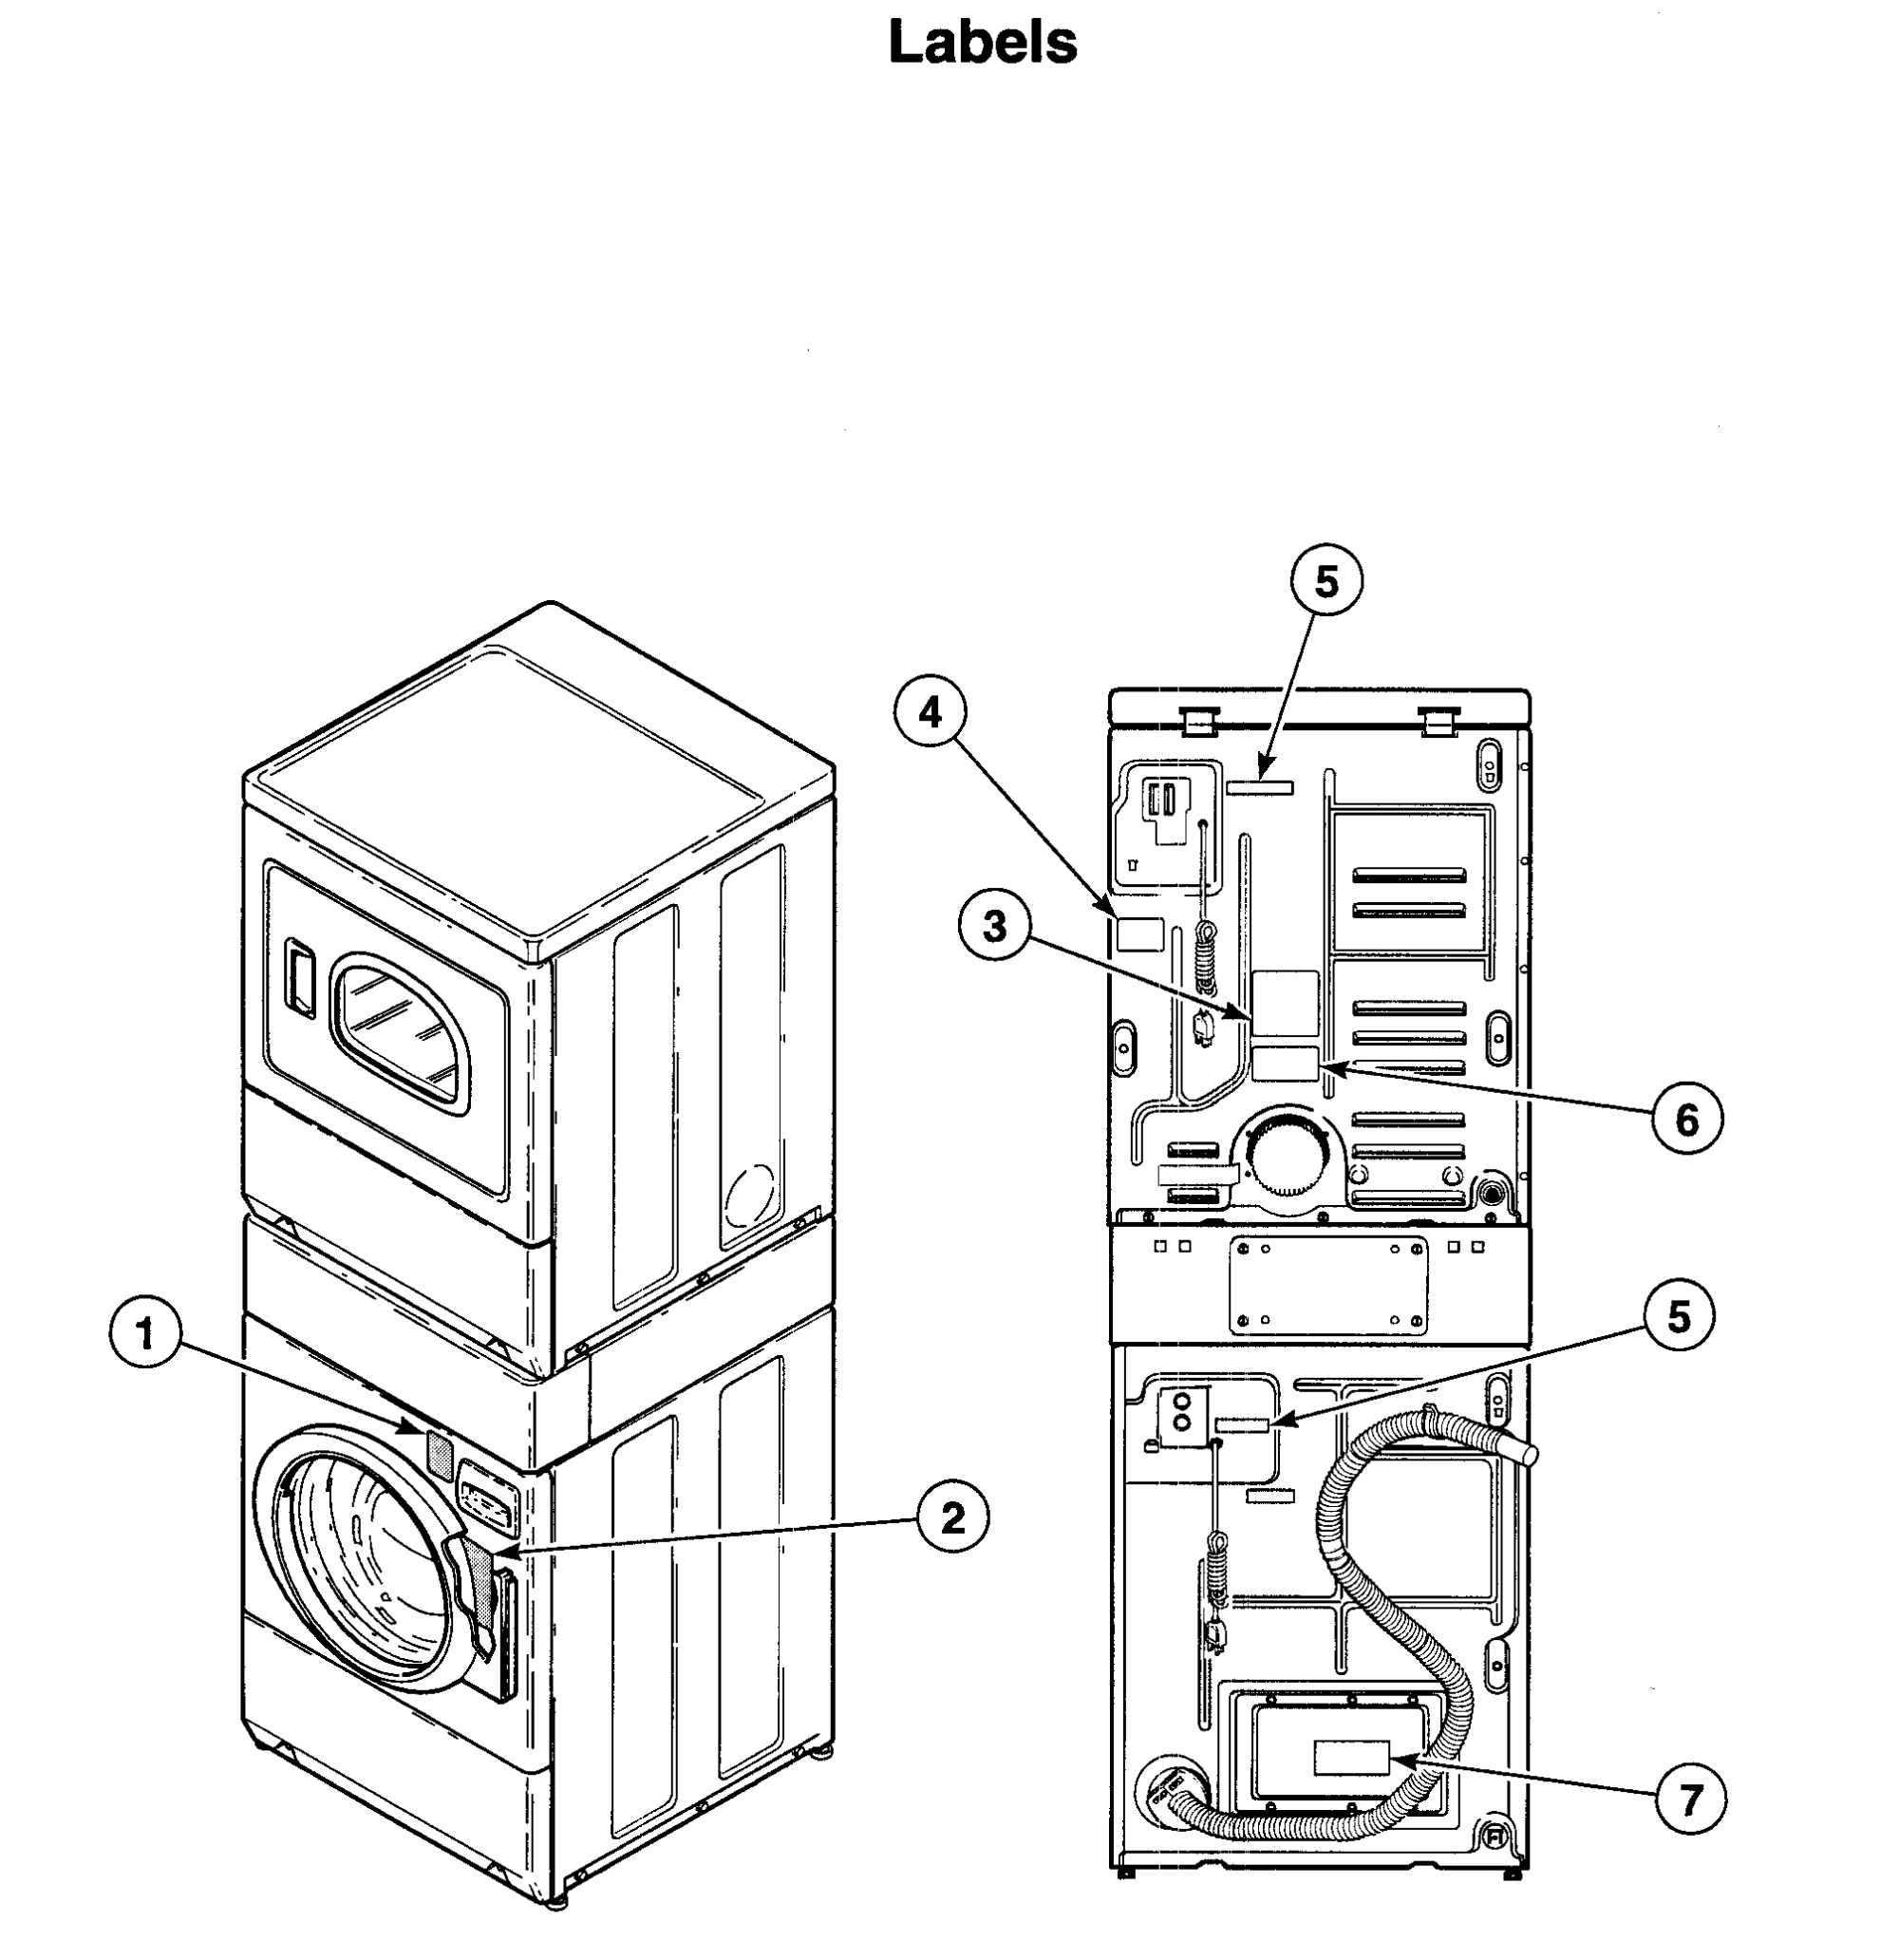 hight resolution of speed queen ltsa7awn4350 labels diagram